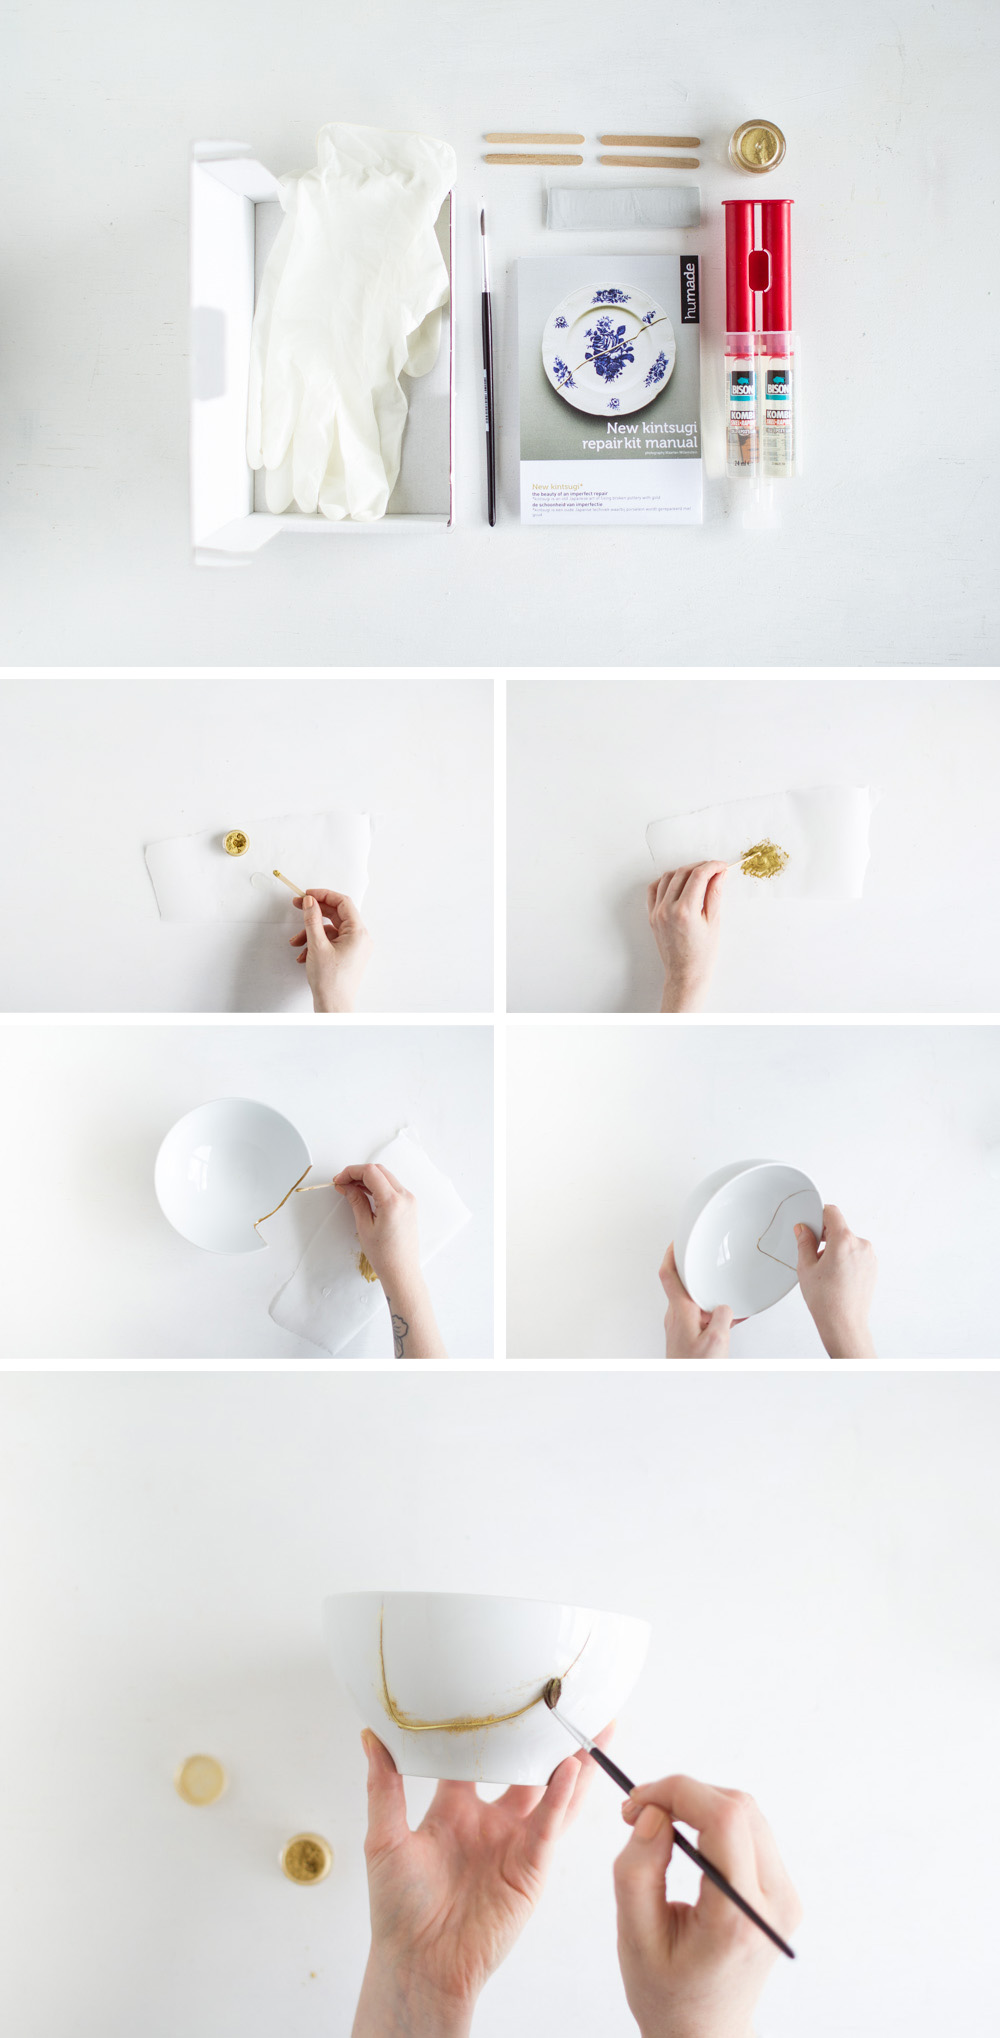 diy gold kintsugi ceramic planter fall for diy. Black Bedroom Furniture Sets. Home Design Ideas